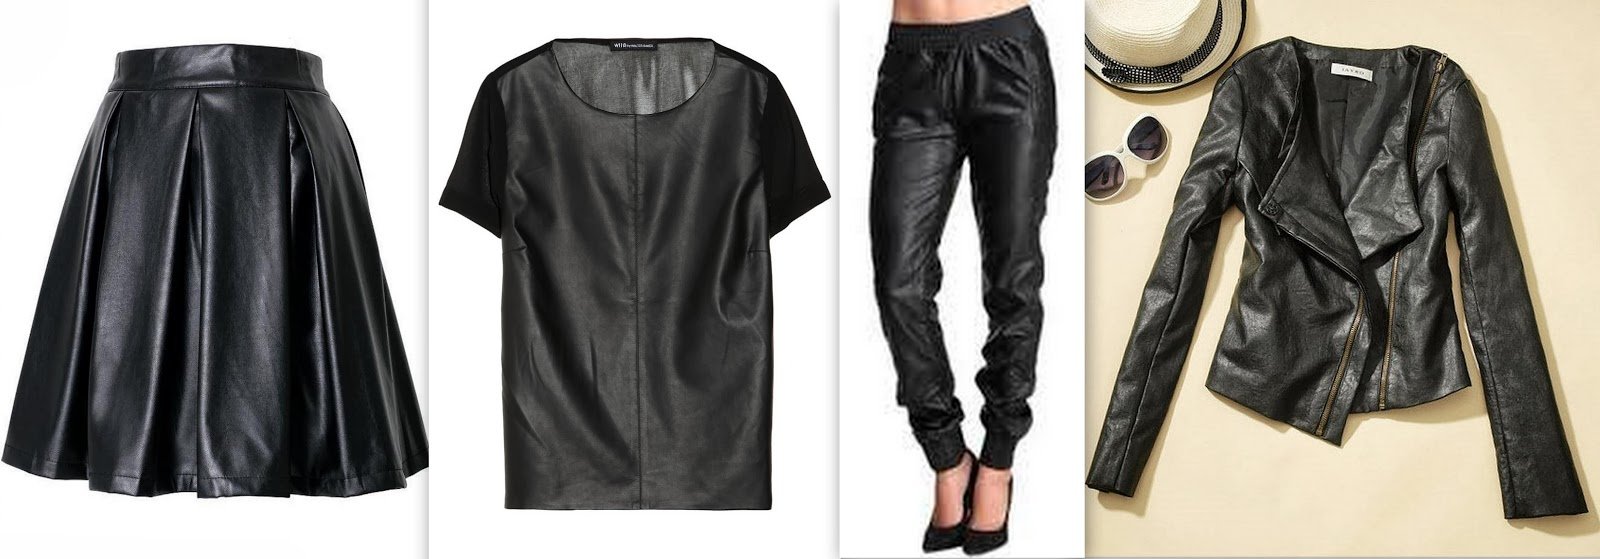 faux leather skirt, faux leather joggers, faux leather top, faux leather jacket,